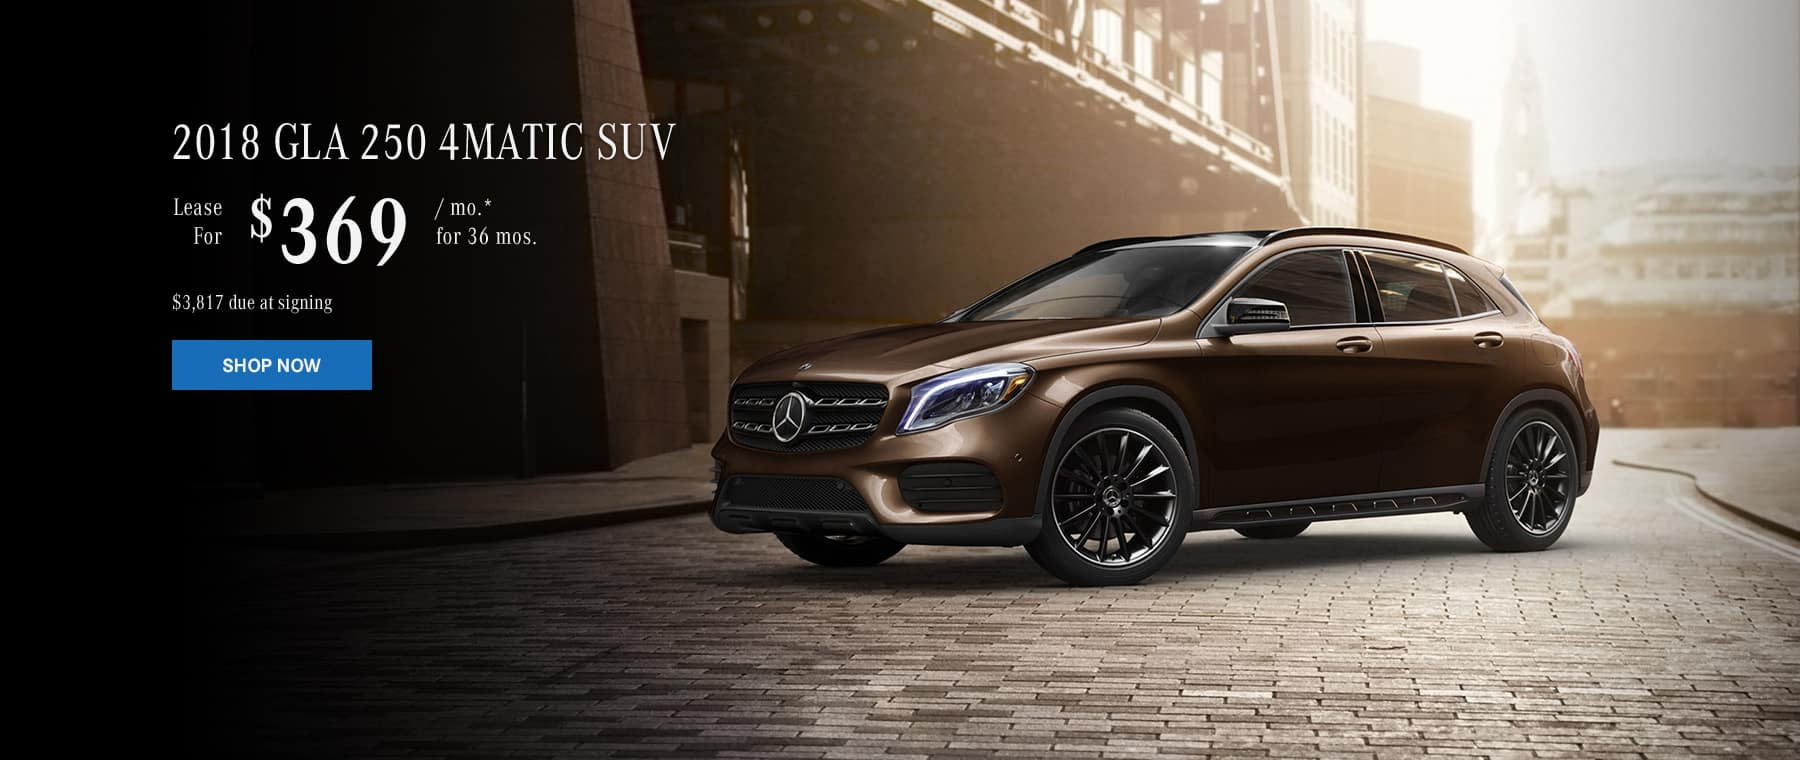 Mercedes Benz Of Rockville Centre: Mercedes Benz Dealer In Rockville  Centre, NY